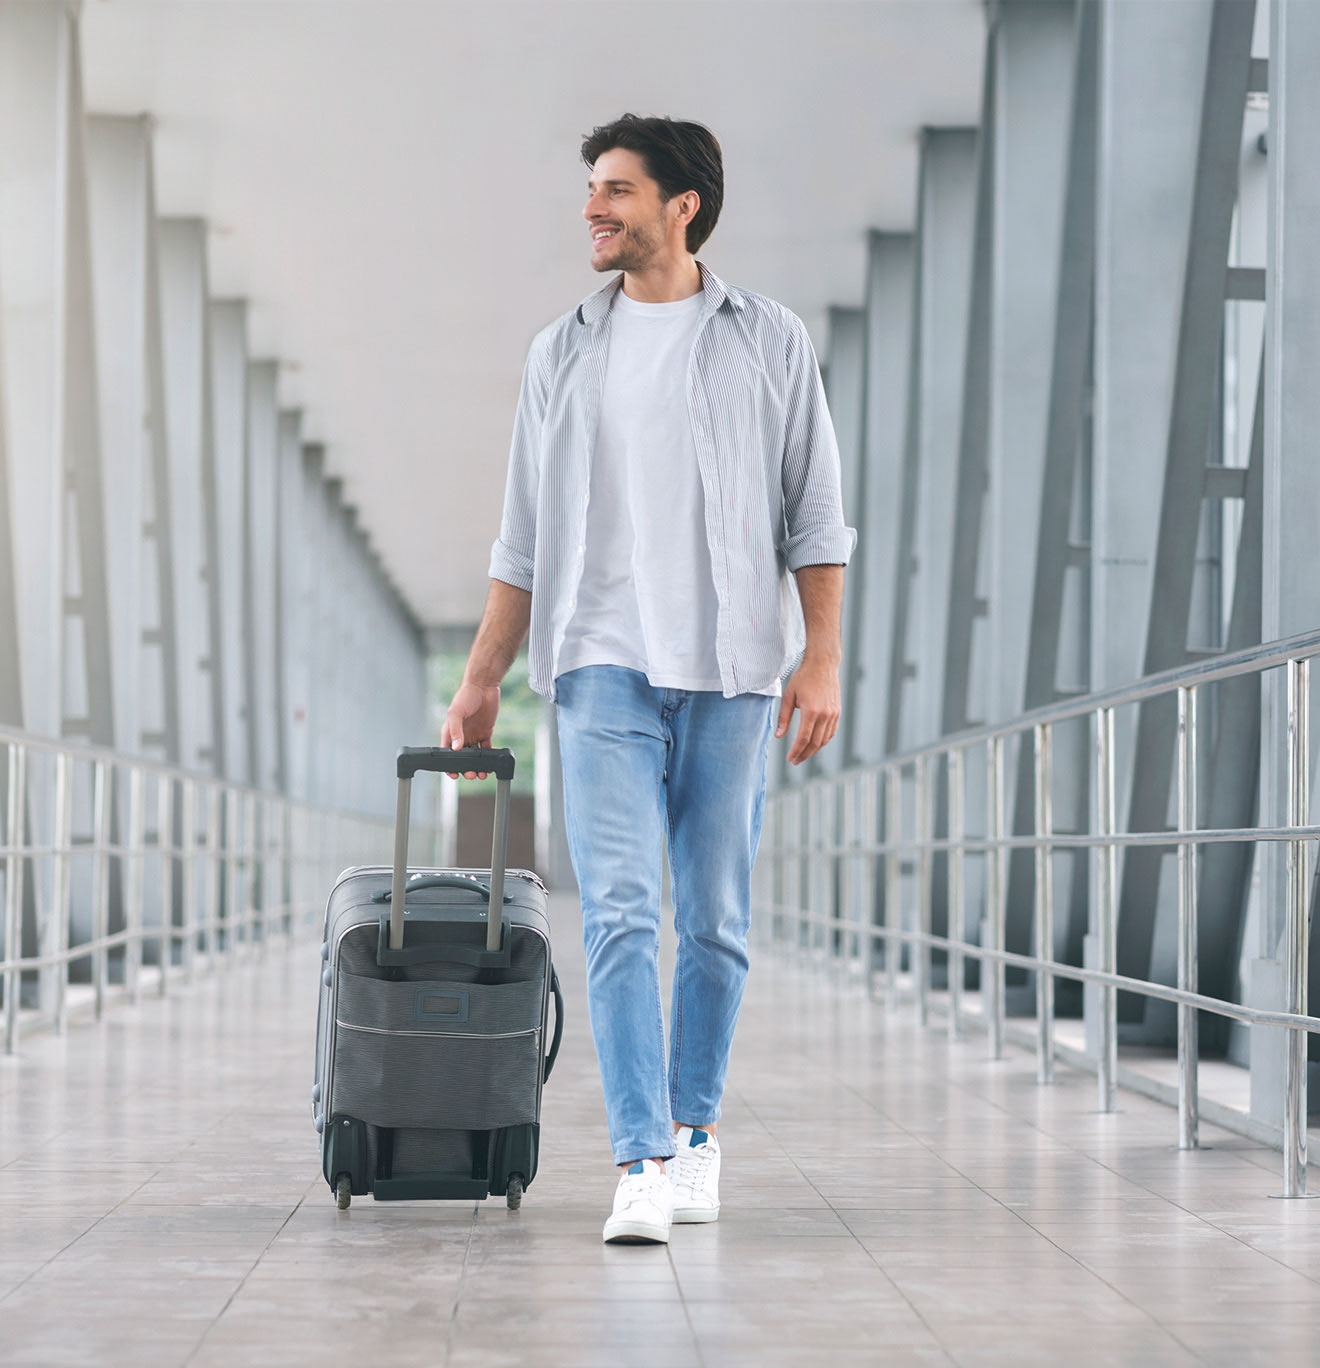 Man walks through airport after getting a covid-19 test